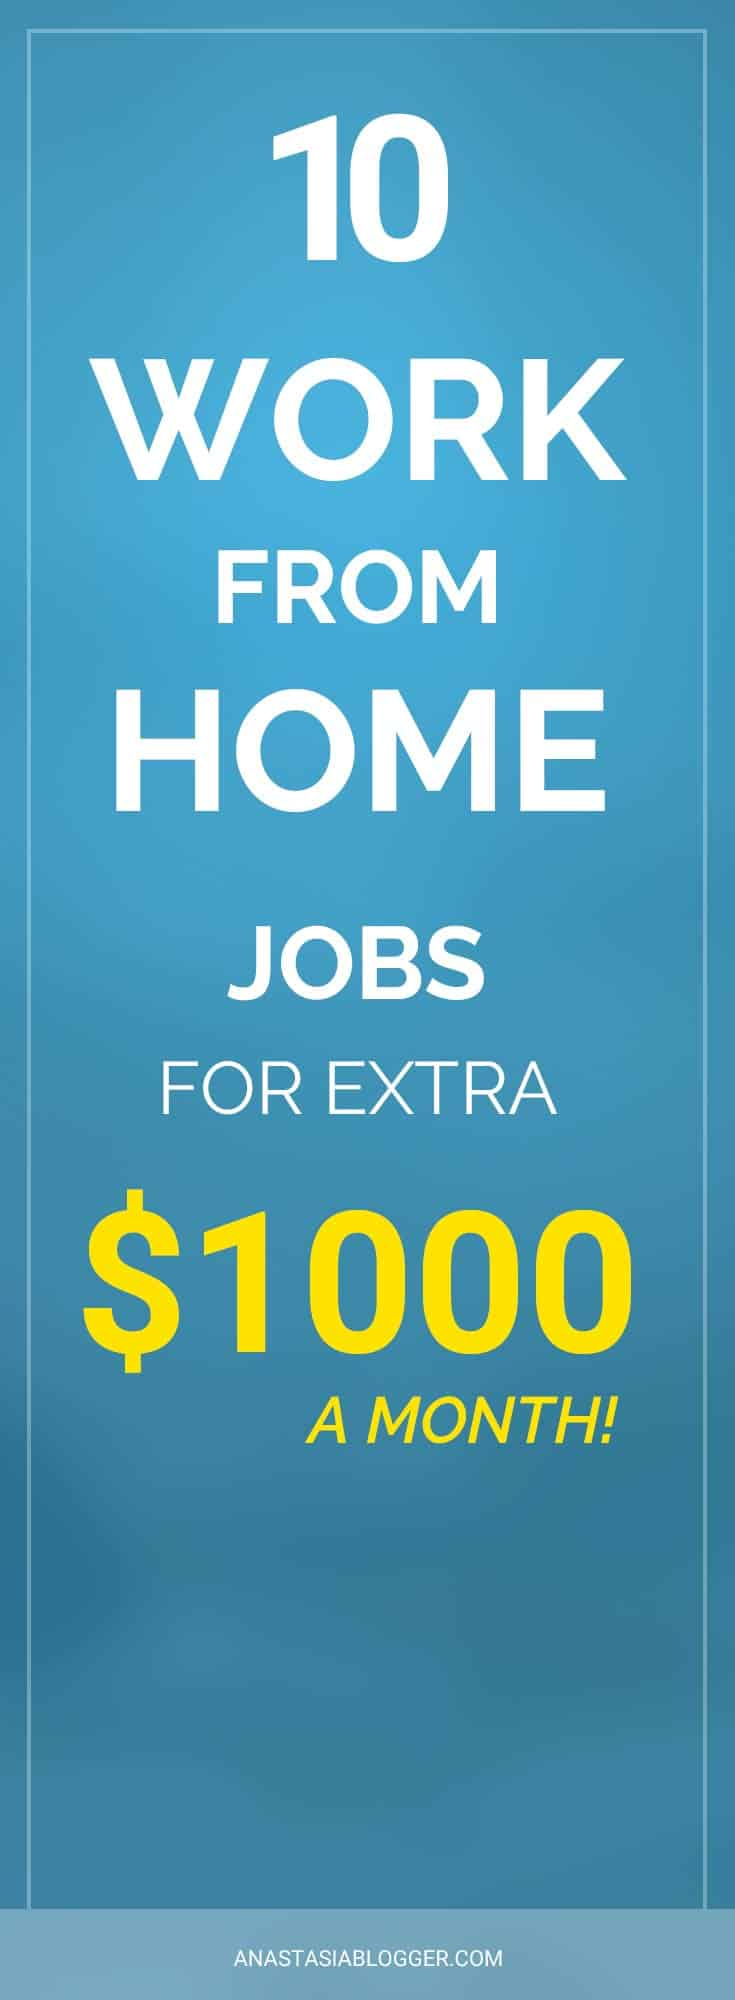 Dreaming to Work from home? Check this list of legitimate work from home opportunities, work from home jobs including work from home data entry, virtual assistant, online surveys, captioner, call center. Work from home worldwide or in the US, Canada, UK and other countries!